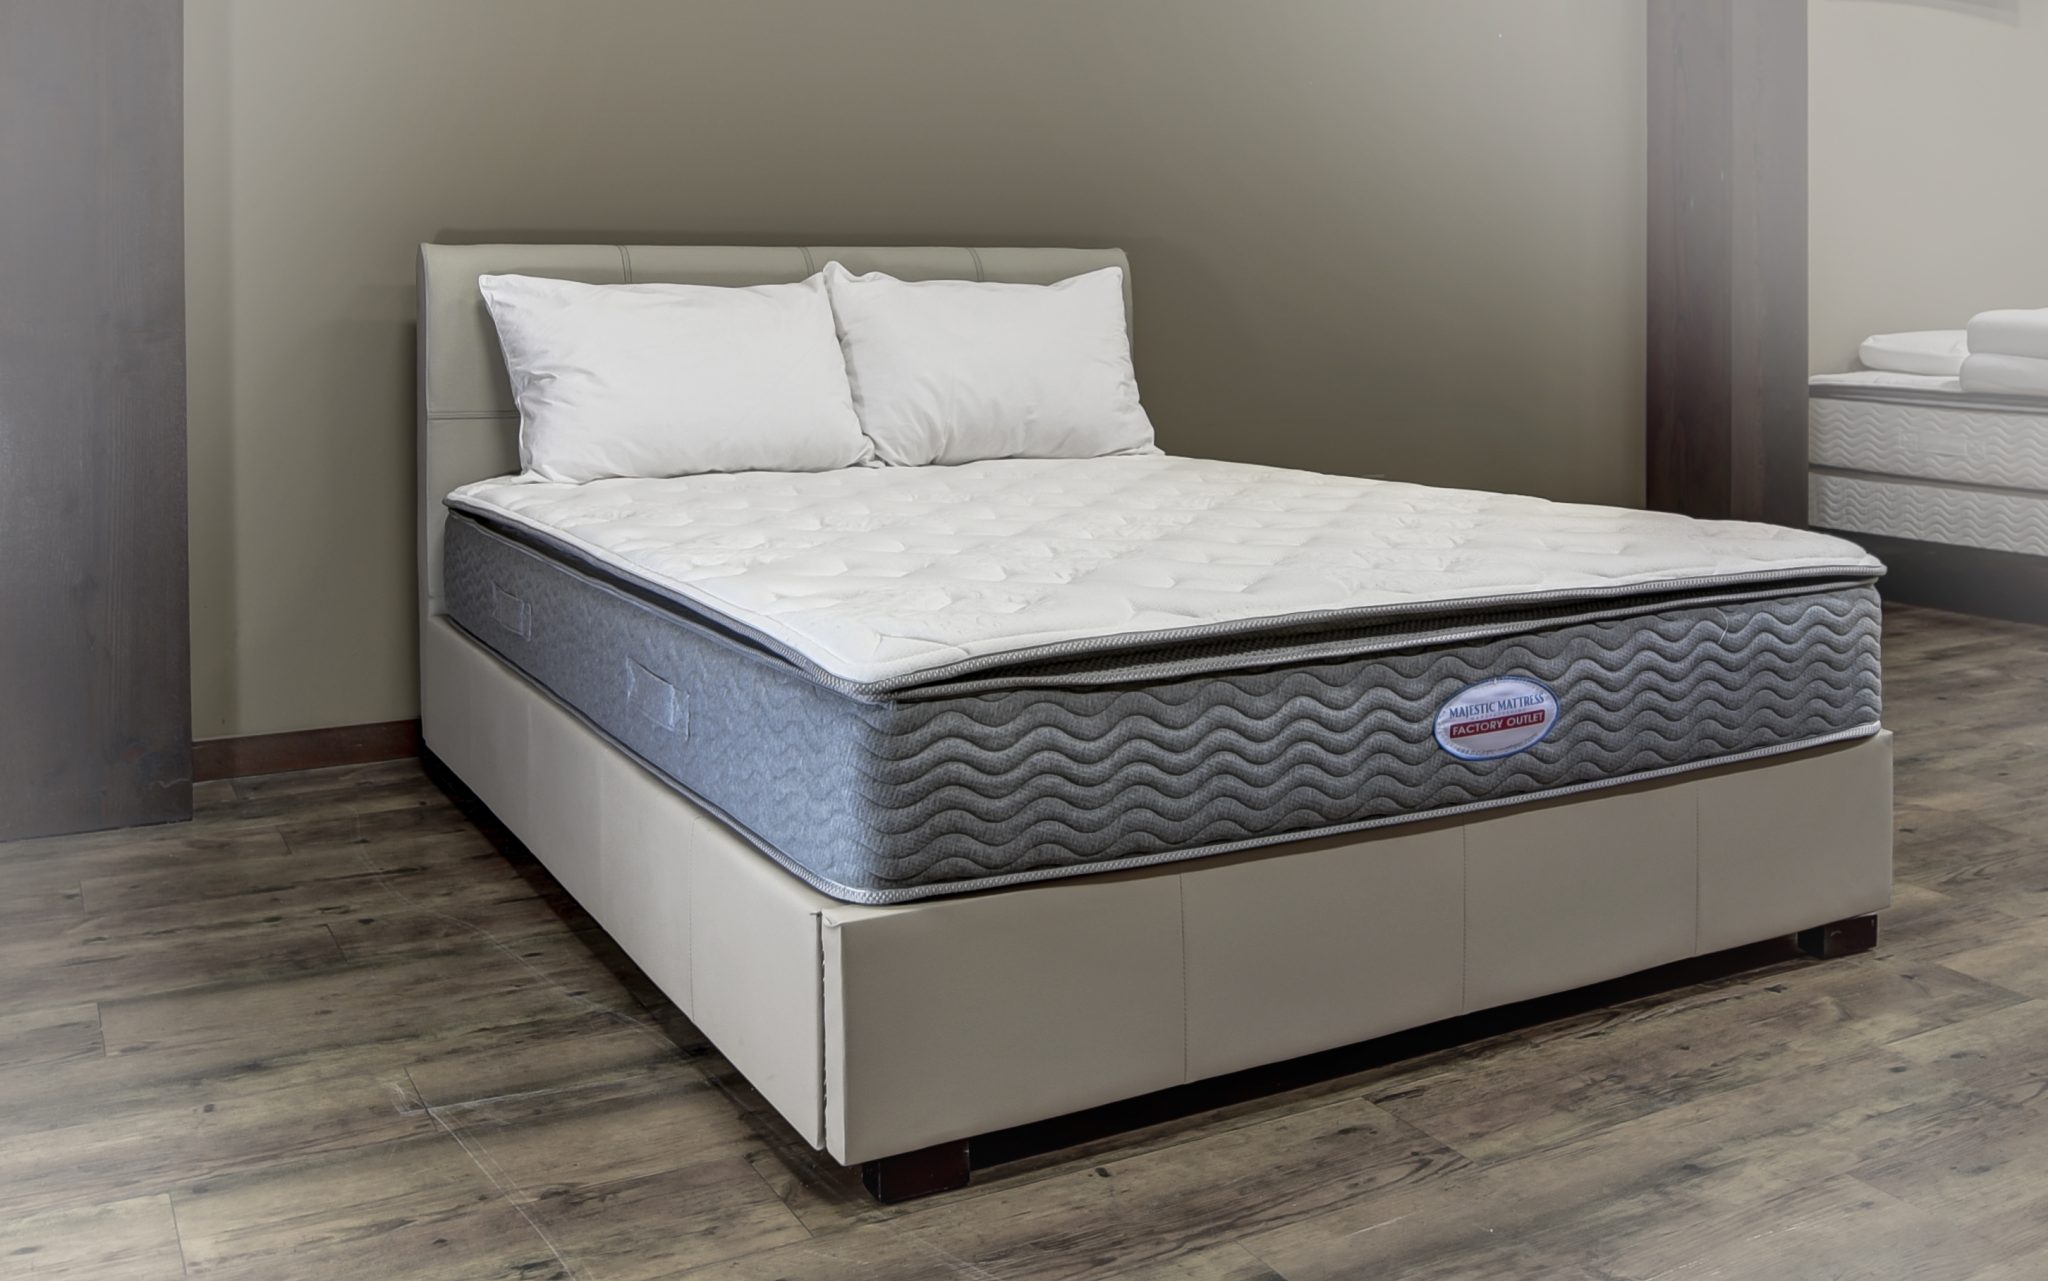 beautysleep top androslfptlorescutaway tx products topper pillow firm depot simmons andros mattress luxury